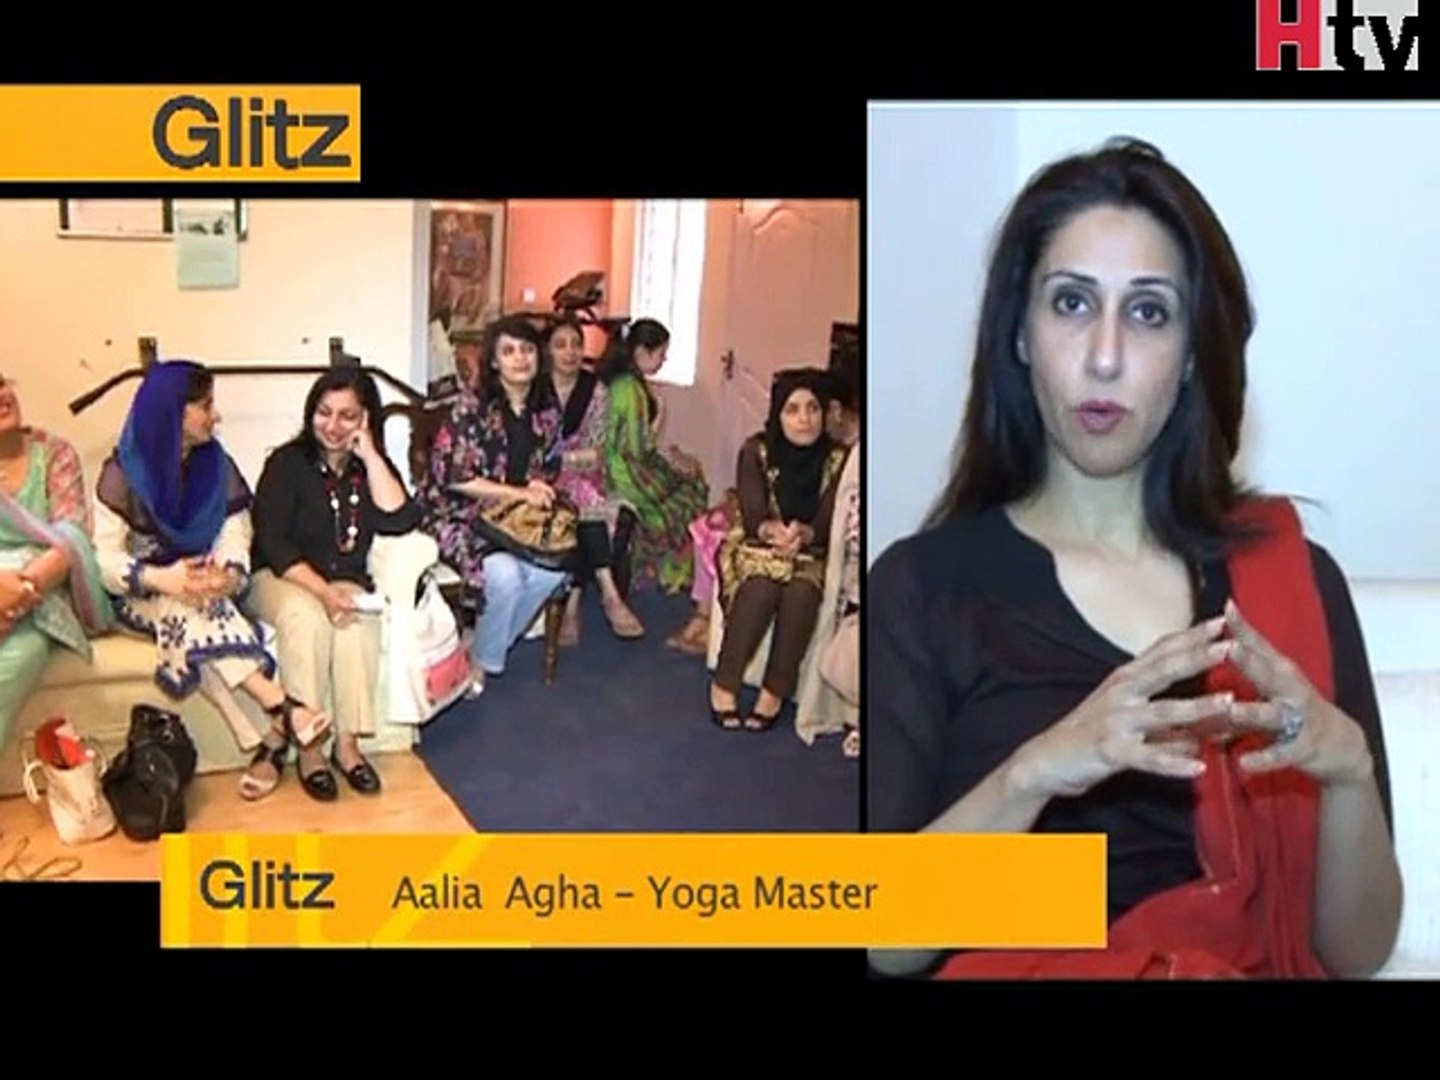 Glitzs - Truth about Weight Loss for Women - Lotus Yoga and Wellness Institute